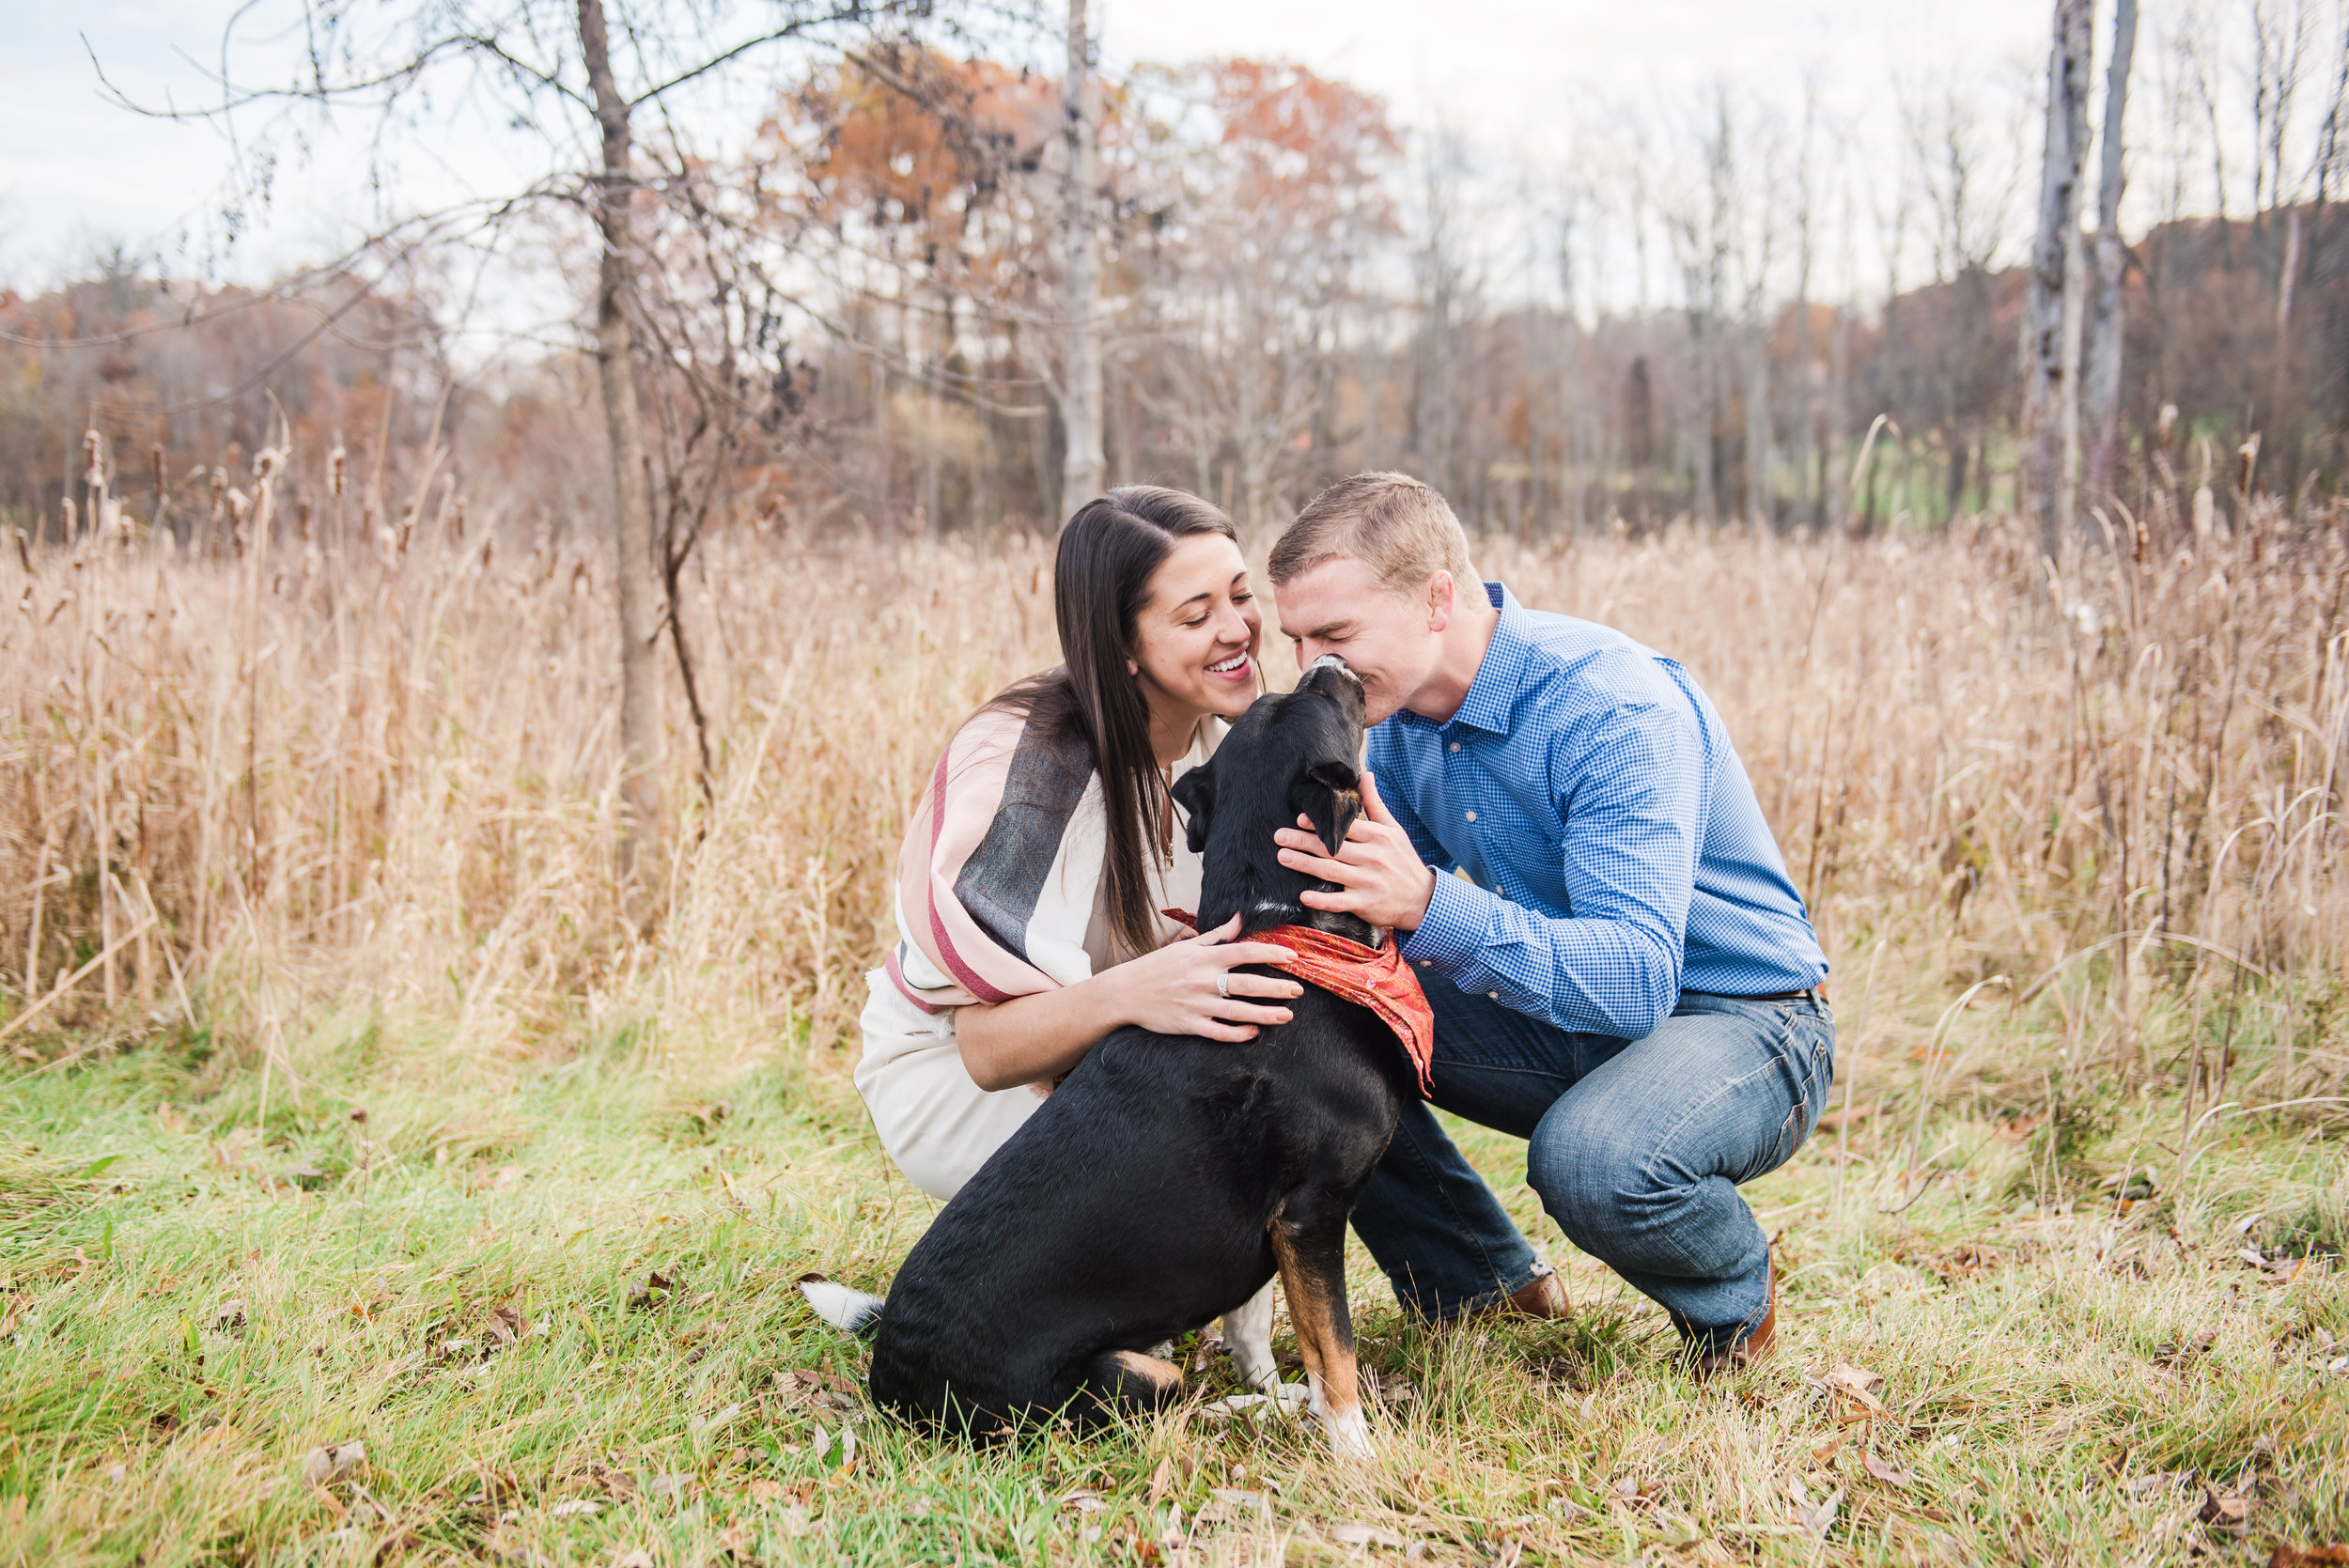 Mendon_Ponds_Park_Rochester_Engagement_Session_JILL_STUDIO_Rochester_NY_Photographer_DSC_0217.jpg